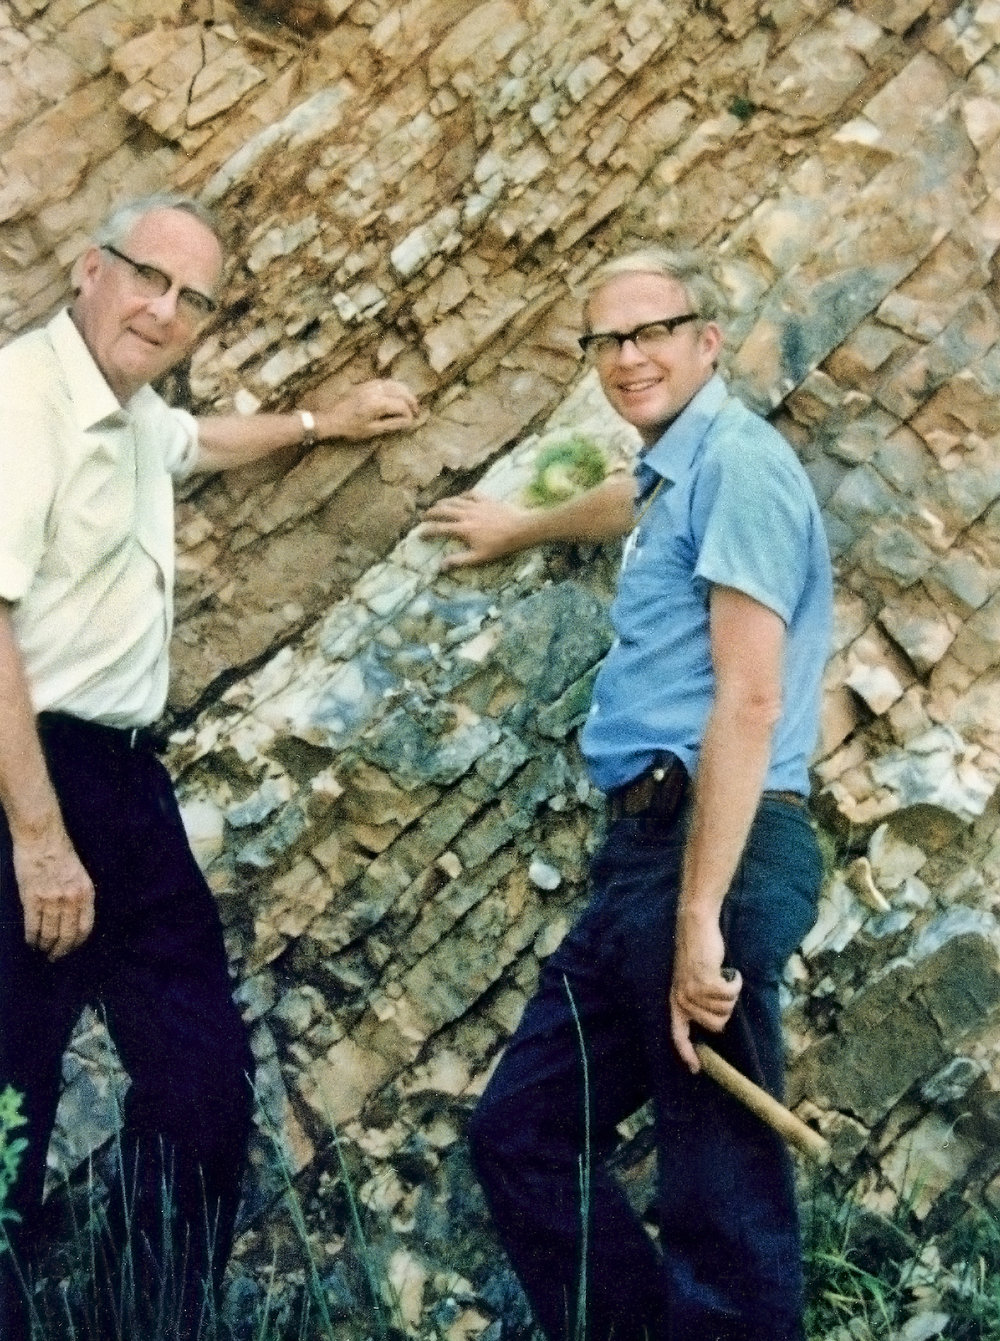 Physicist Luis Alvarez and his son, geologist Walter Alvarez, pose next to the Cretaceous-Tertiary boundary at Gubbio, Italy .  Lawrence Berkeley Laboratory/Wikimedia Commons  (public domain)